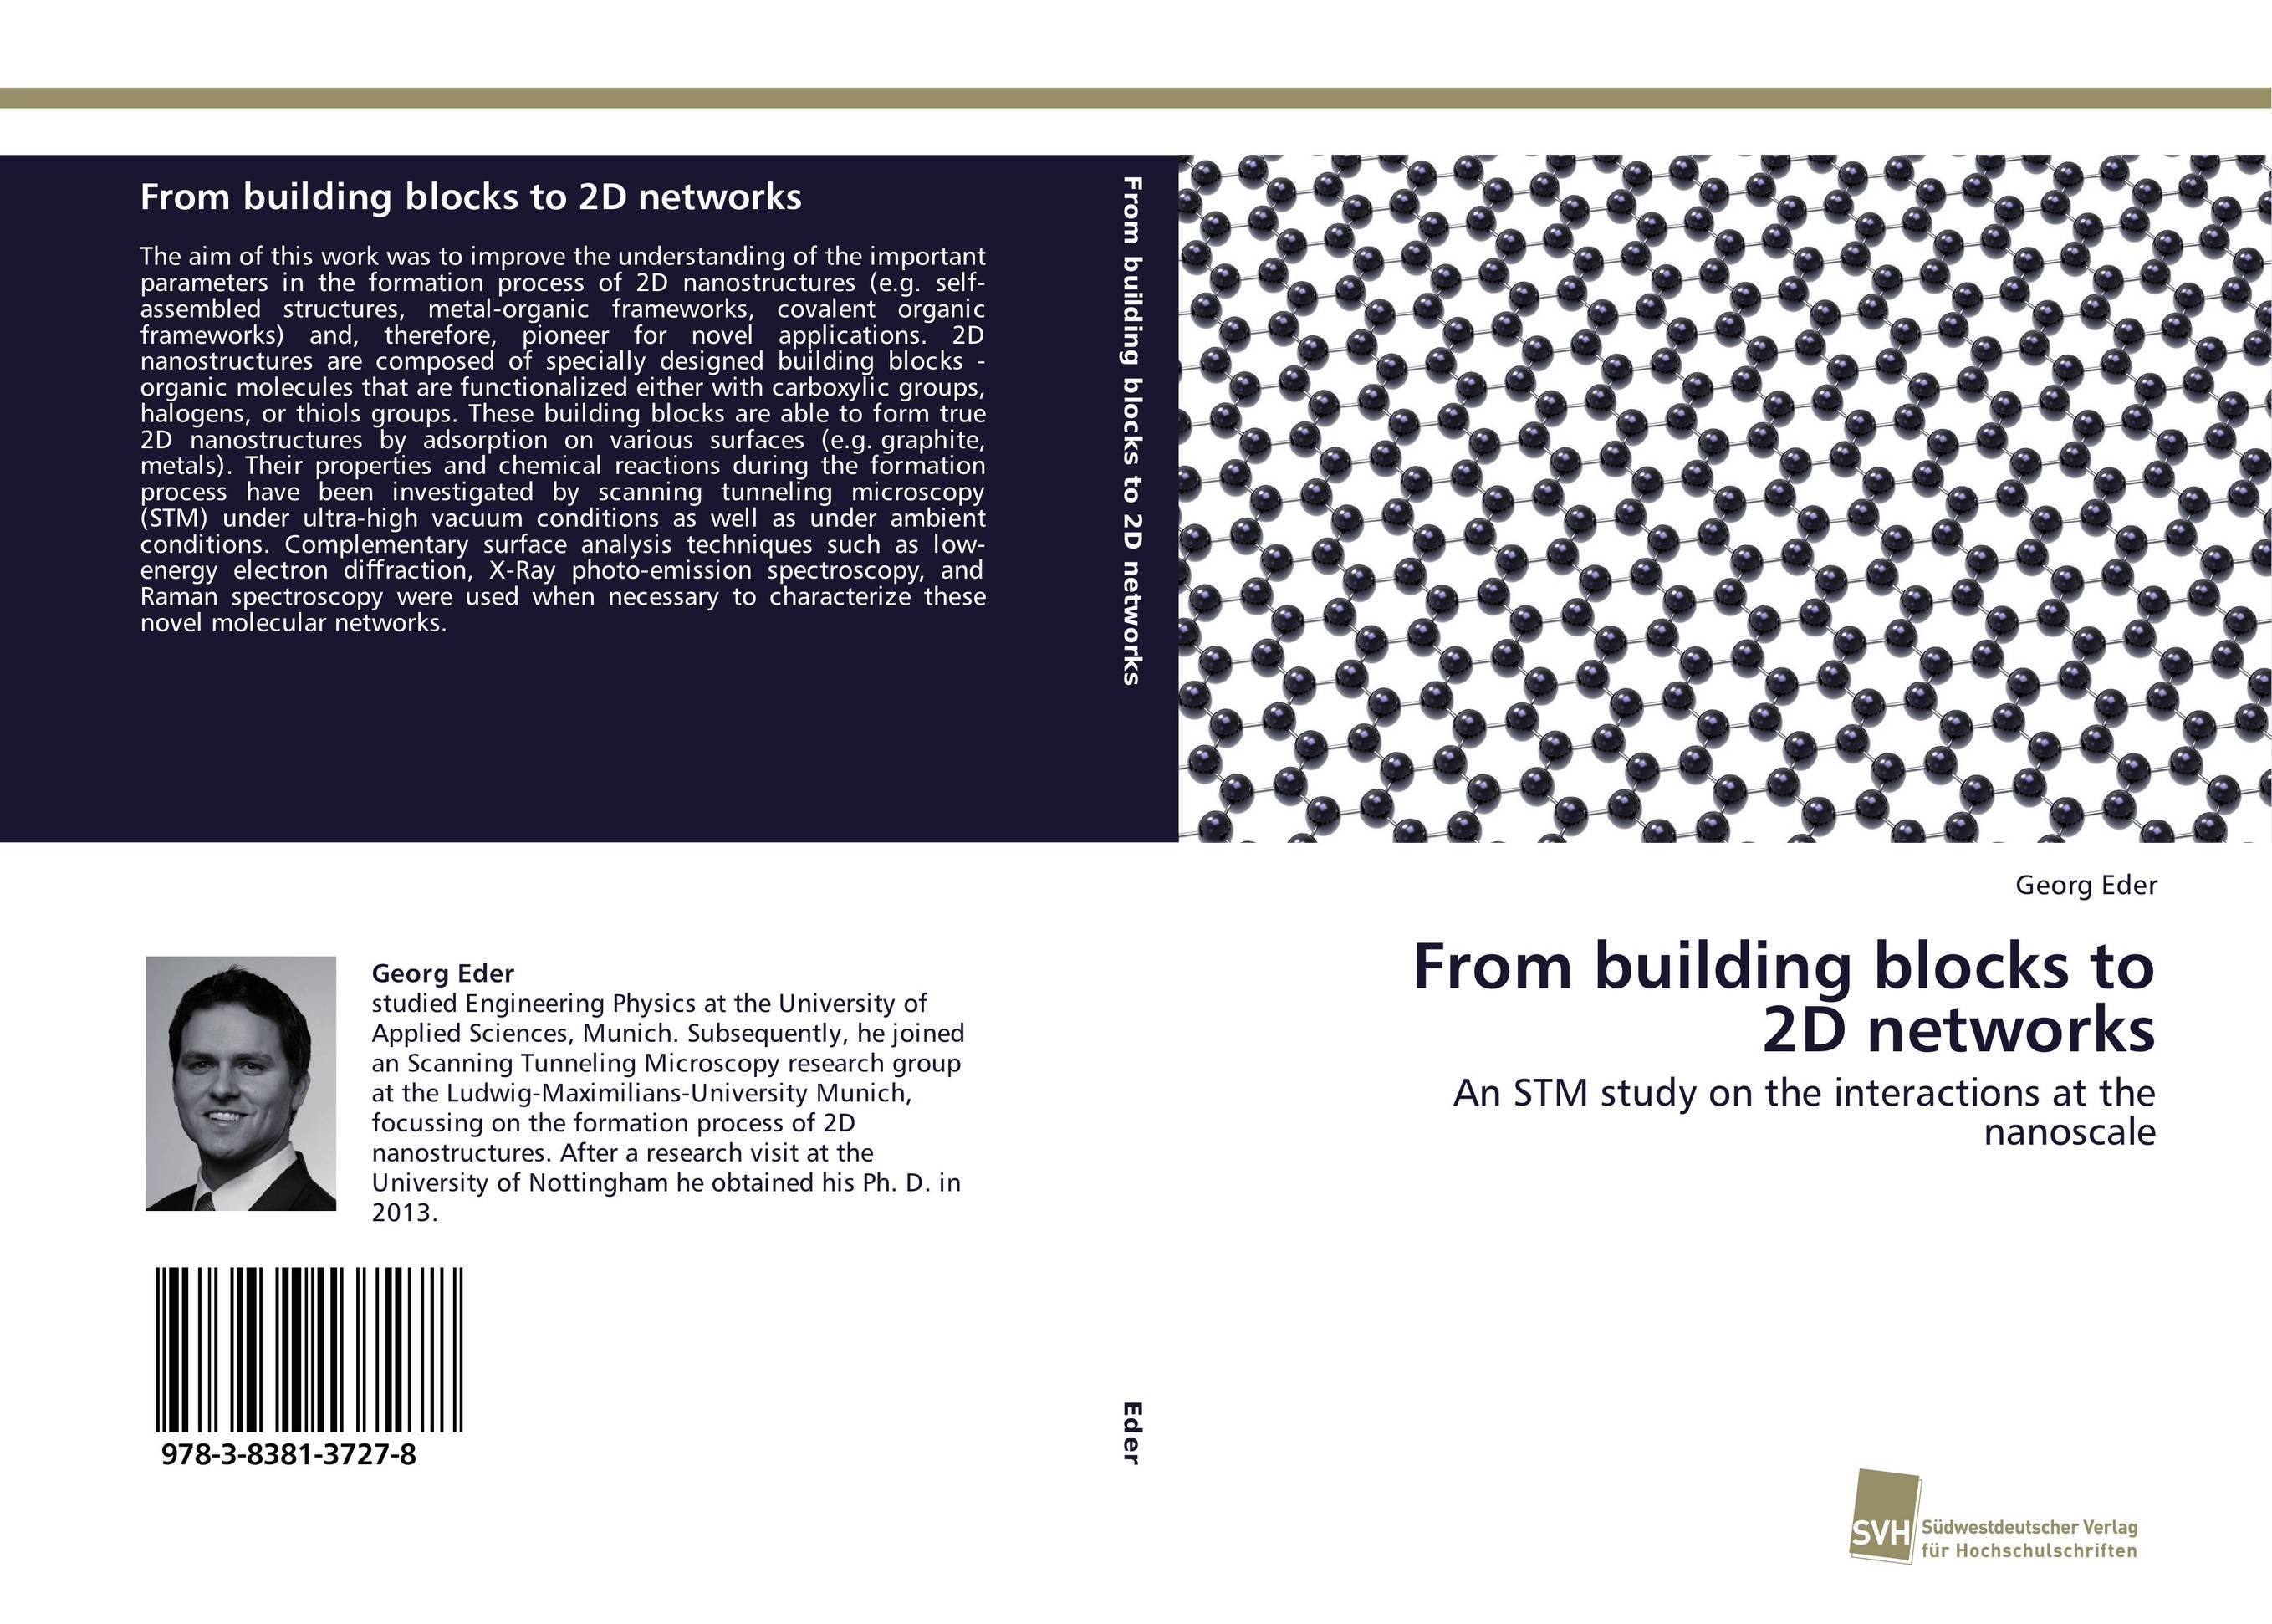 From building blocks to 2D networks mohamed henini handbook of self assembled semiconductor nanostructures for novel devices in photonics and electronics